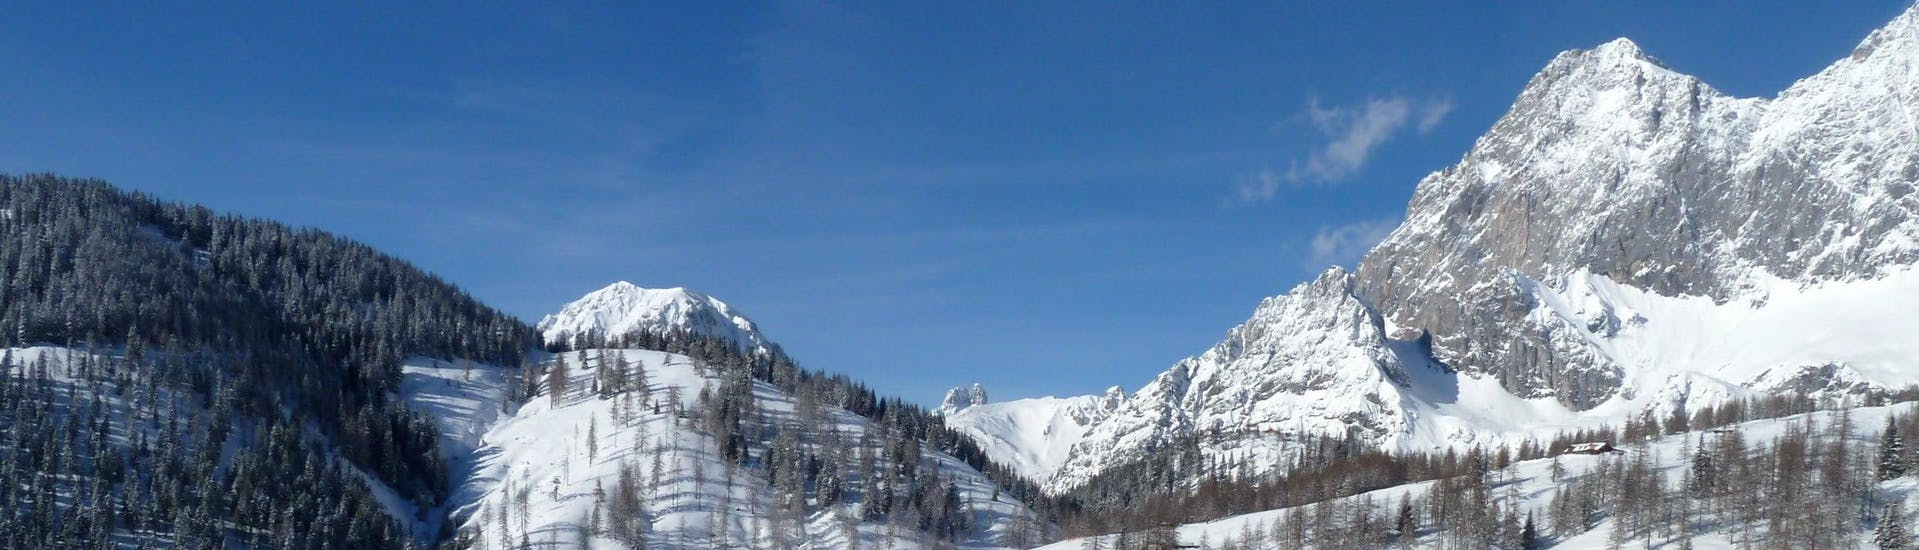 View over the sunny mountain landscape while learning to ski with the ski schools in Ramsau am Dachstein.